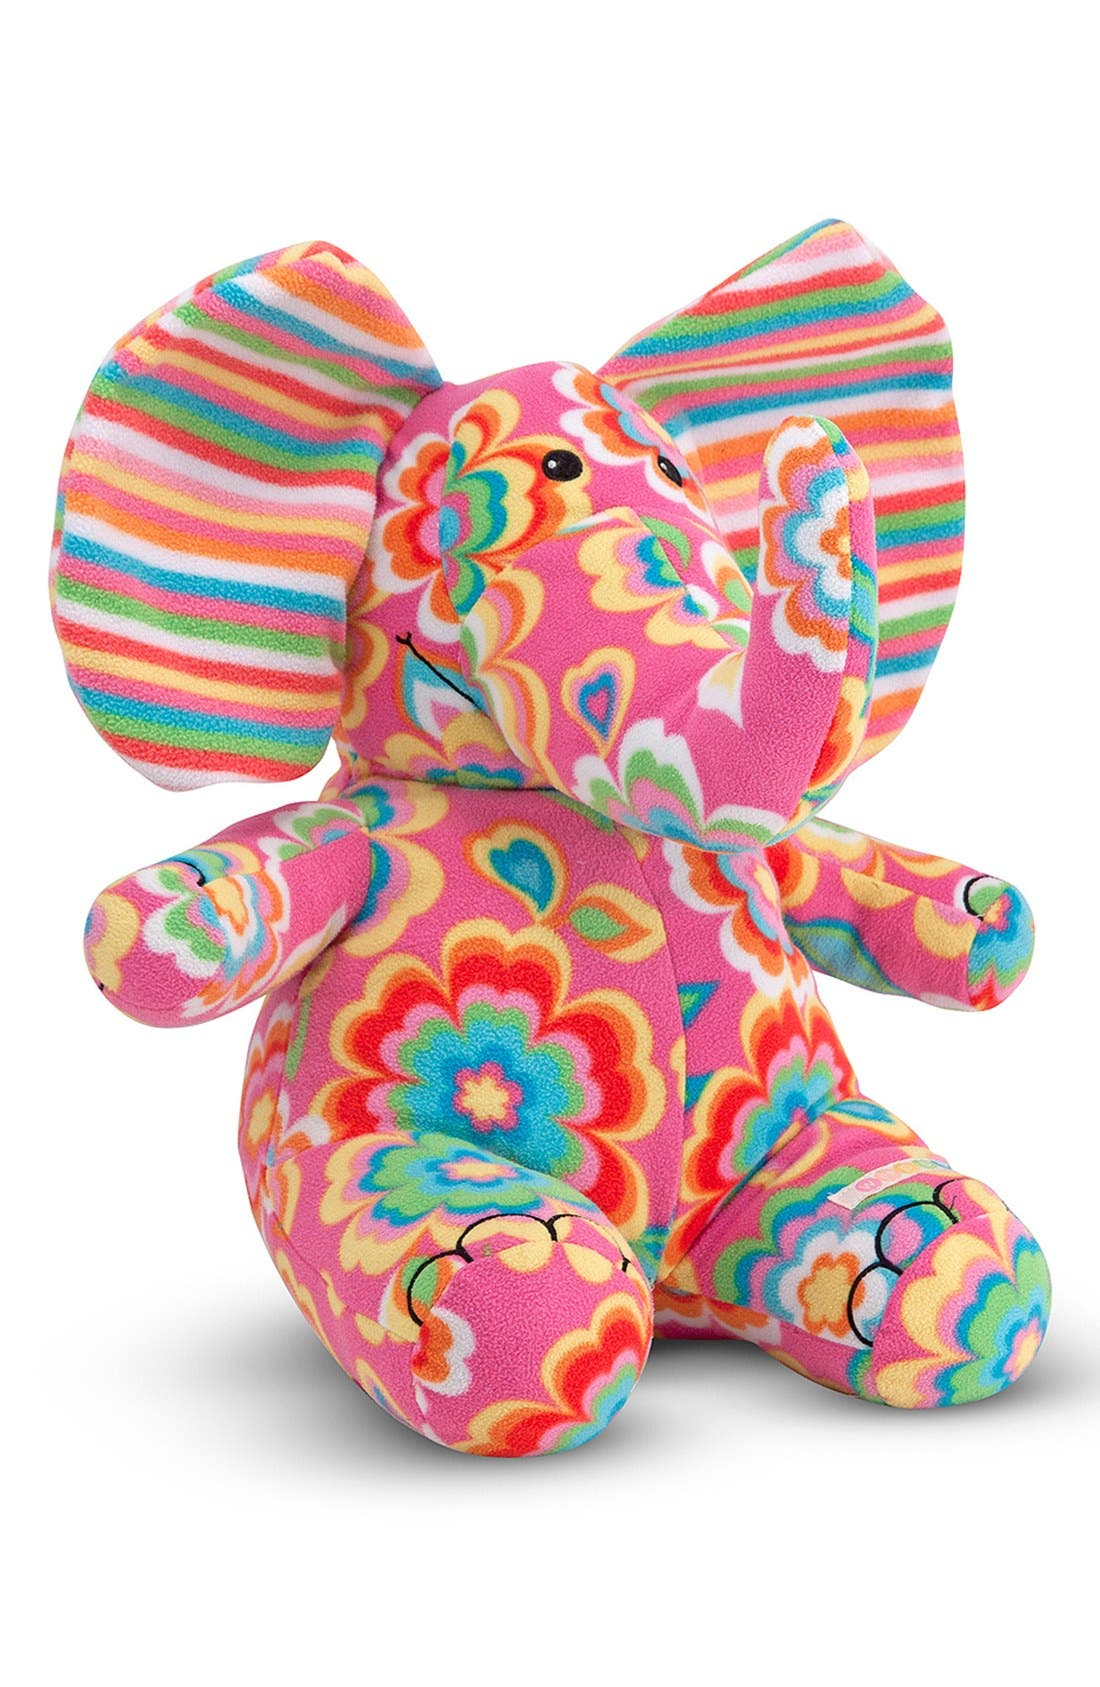 MELISSA & DOUG 'Beeposh - Sally Elephant' Plush